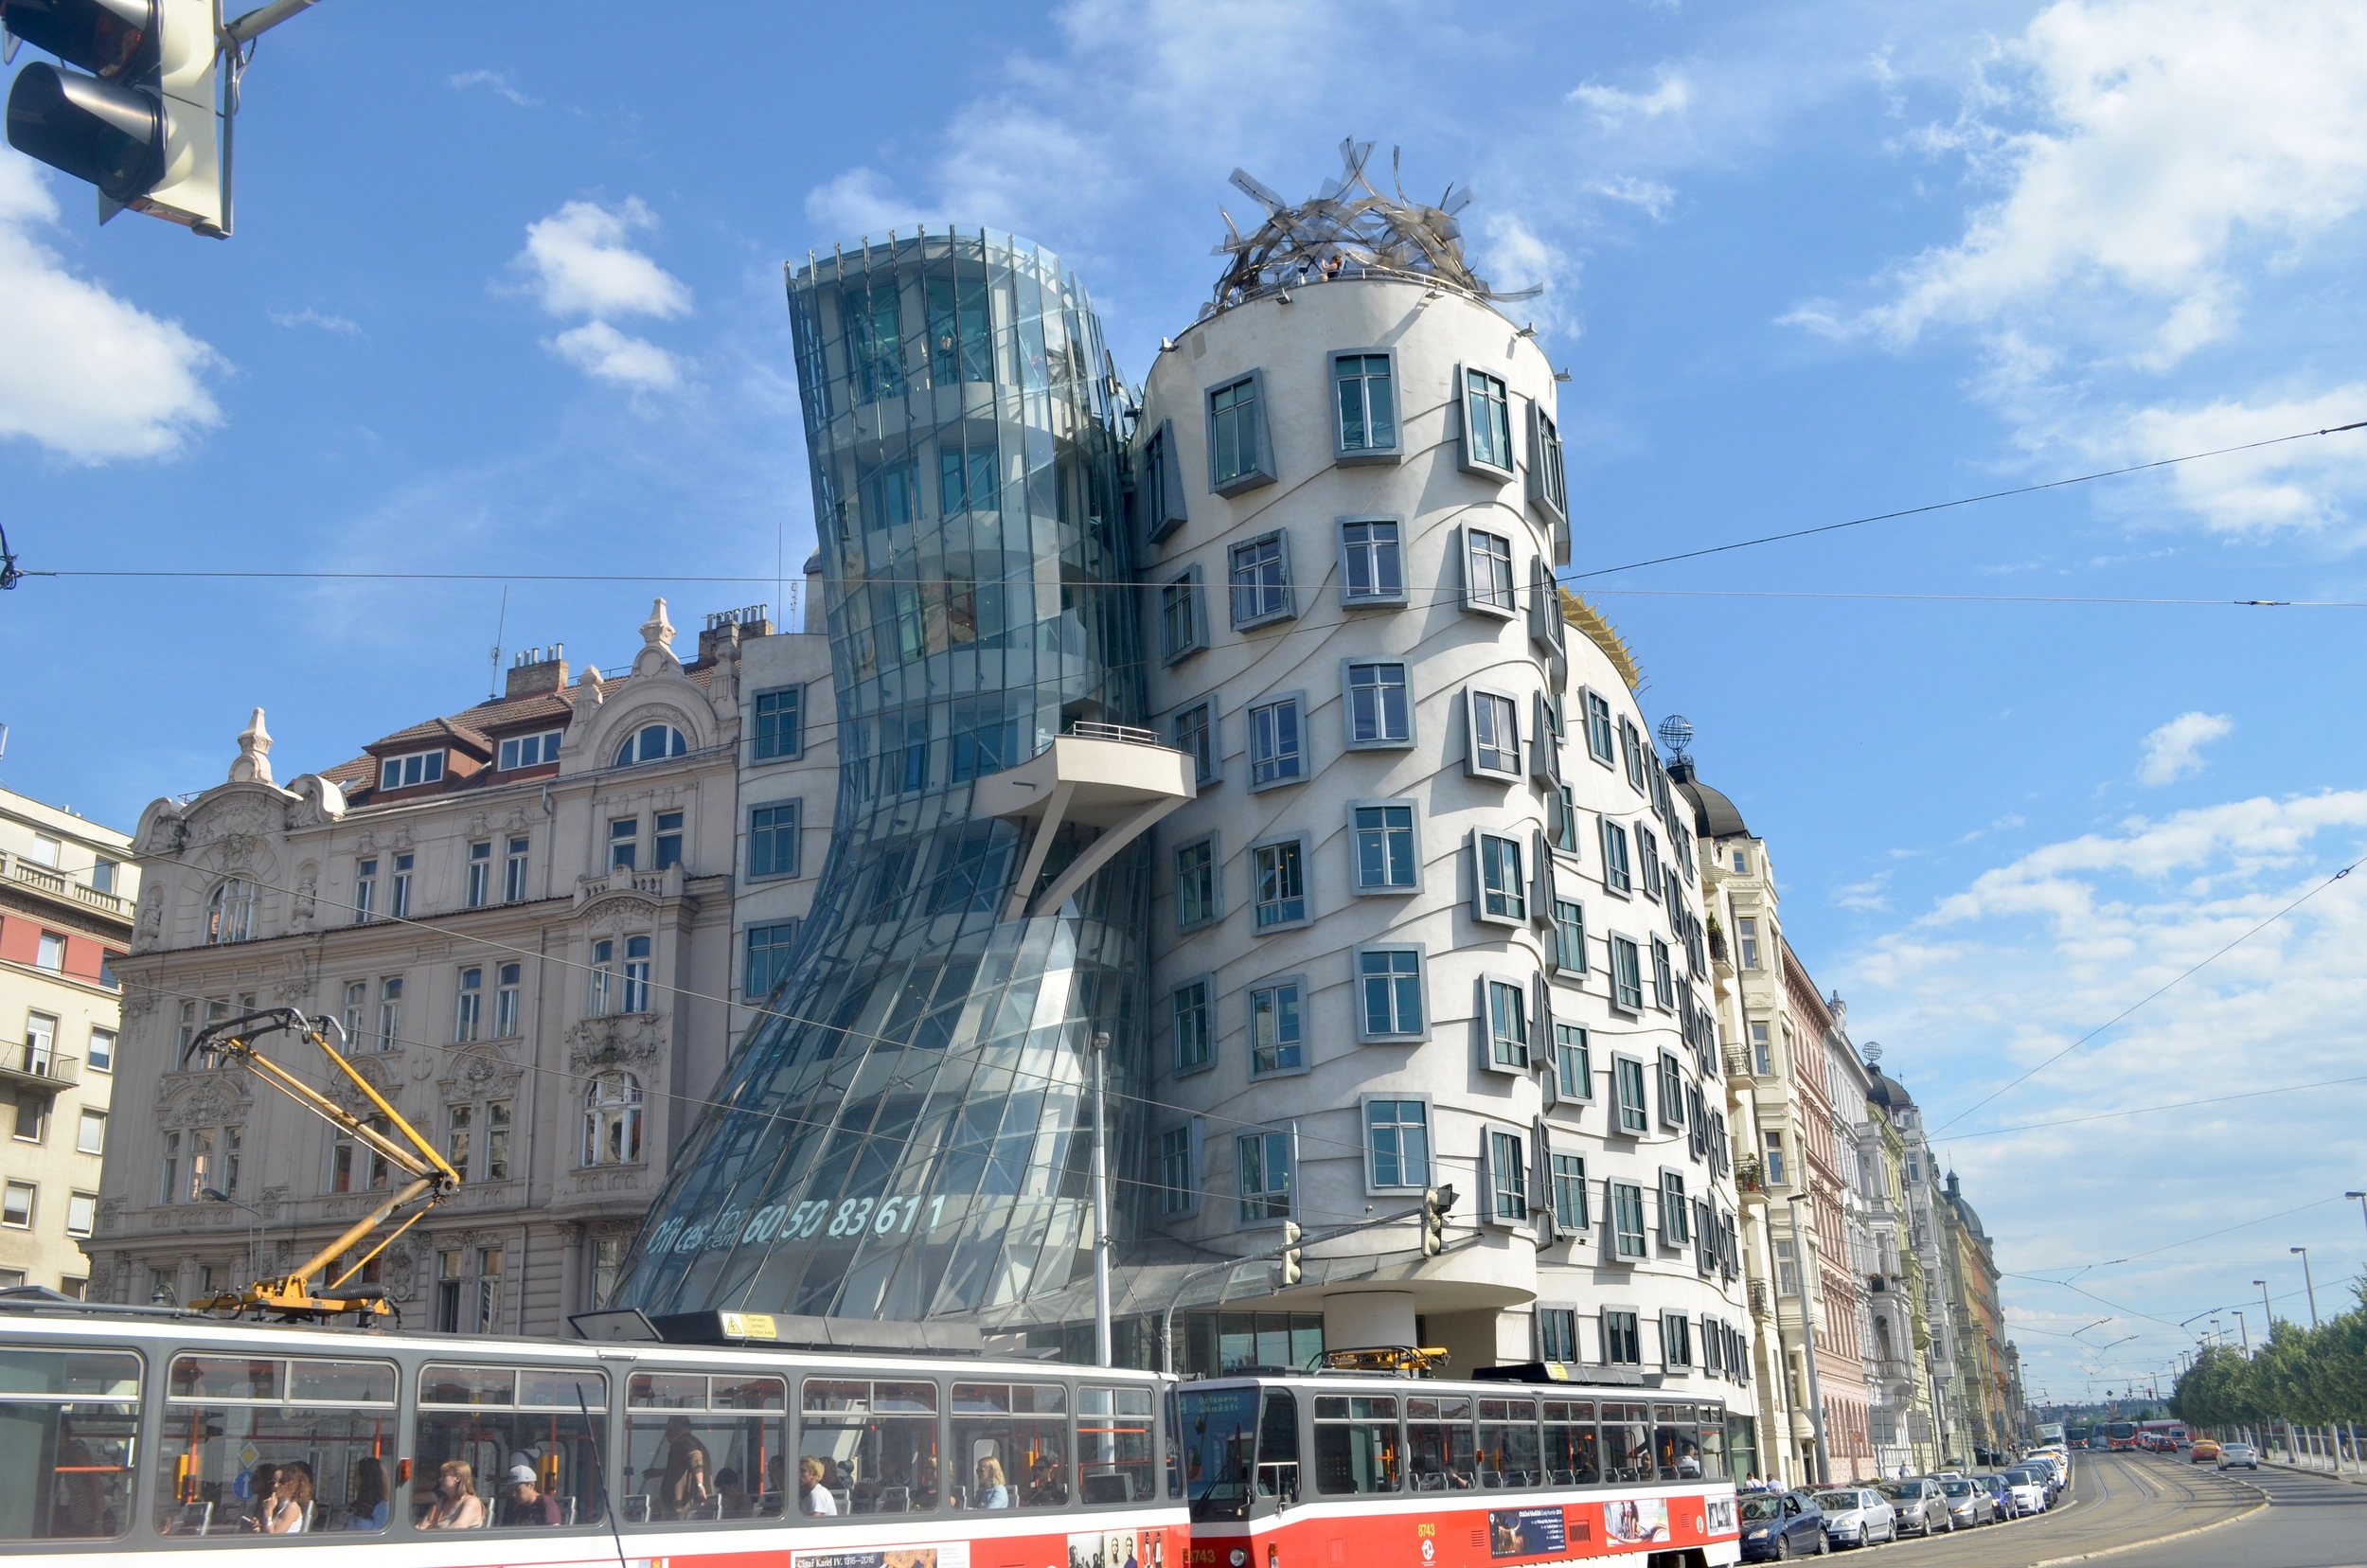 Check out the Dancing House while you're in Prague--plus the views from the (surprisingly affordable) cafe at the top are not to be missed!